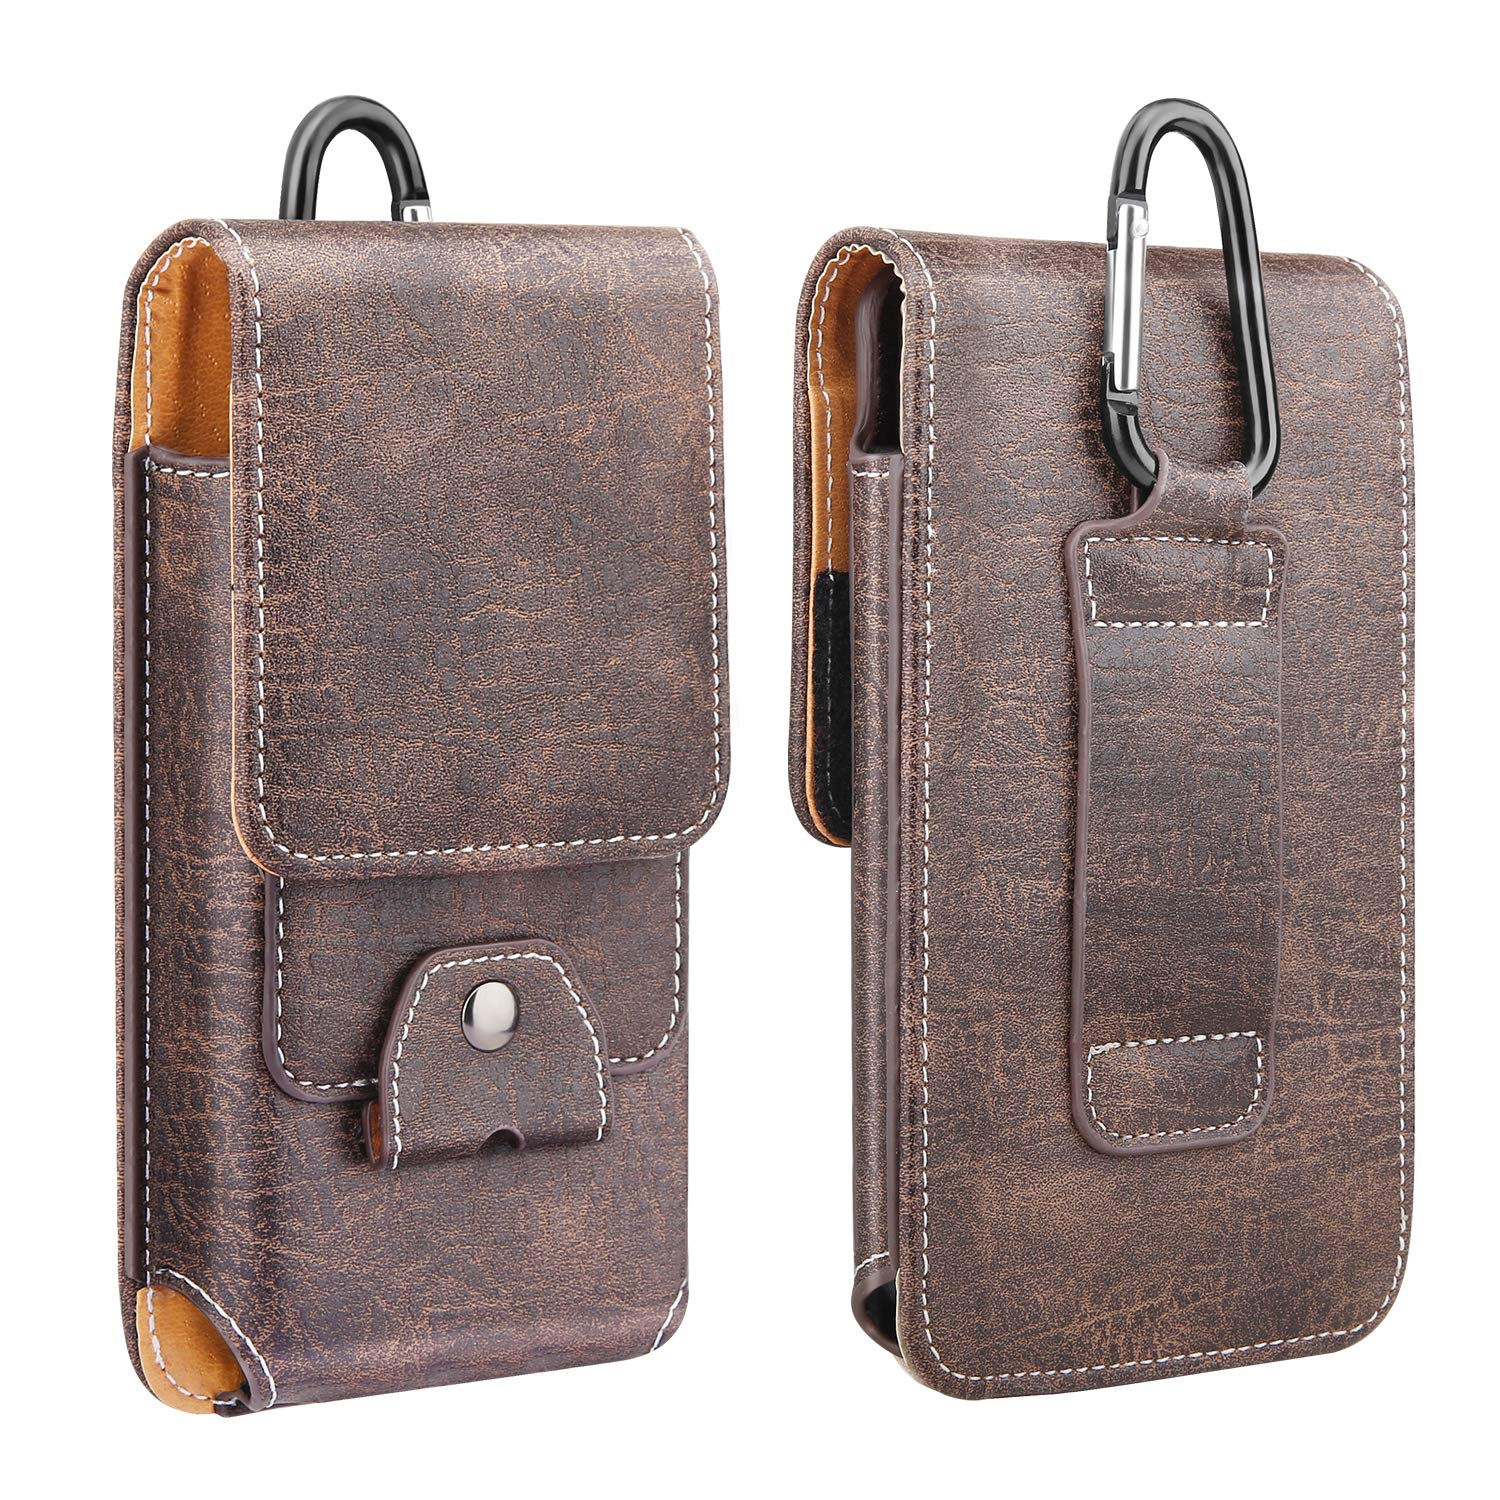 """MoKo Phone Holster, PU Leather Belt Loop Case Pouch Cover with Carabiner + Card Slot Fit 6.5"""" Phone, iPhone SE 2020/11 Pro/11/11 Pro Max/Xs Max/XR/Xs/X, Galaxy Note 10/S10e/S10/S10P/S20 - Brown"""